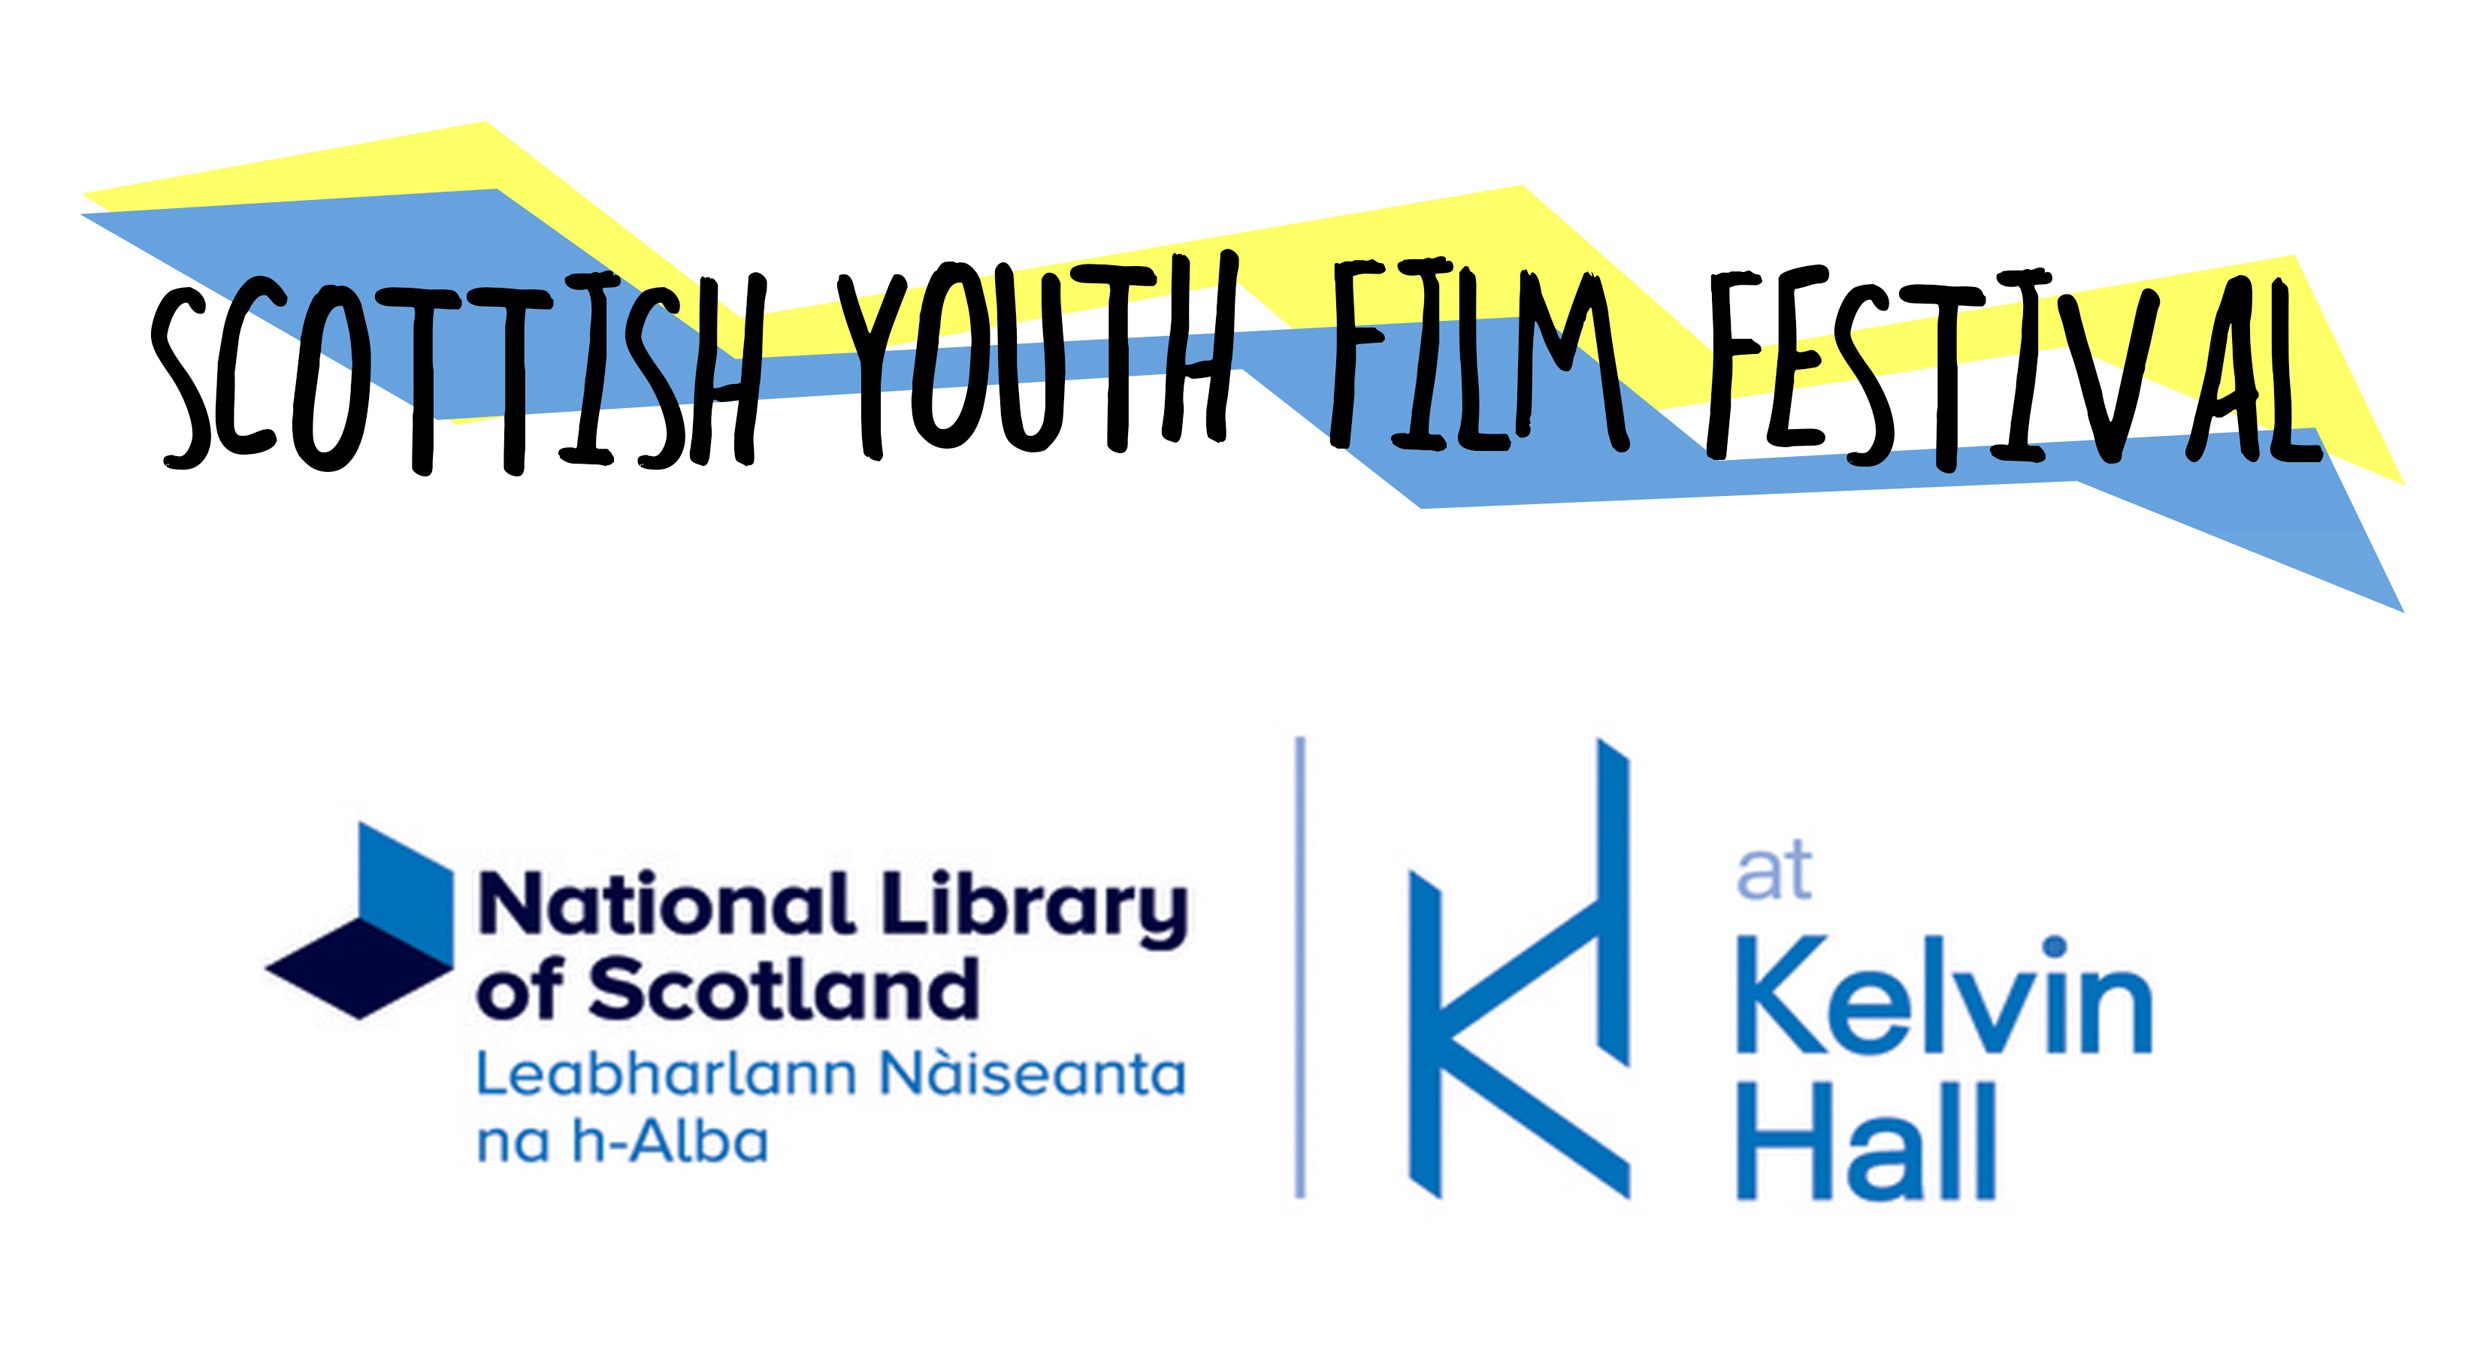 National Library of Scotland at Kelvin Hall logo and th Scottish Youth Festival logo